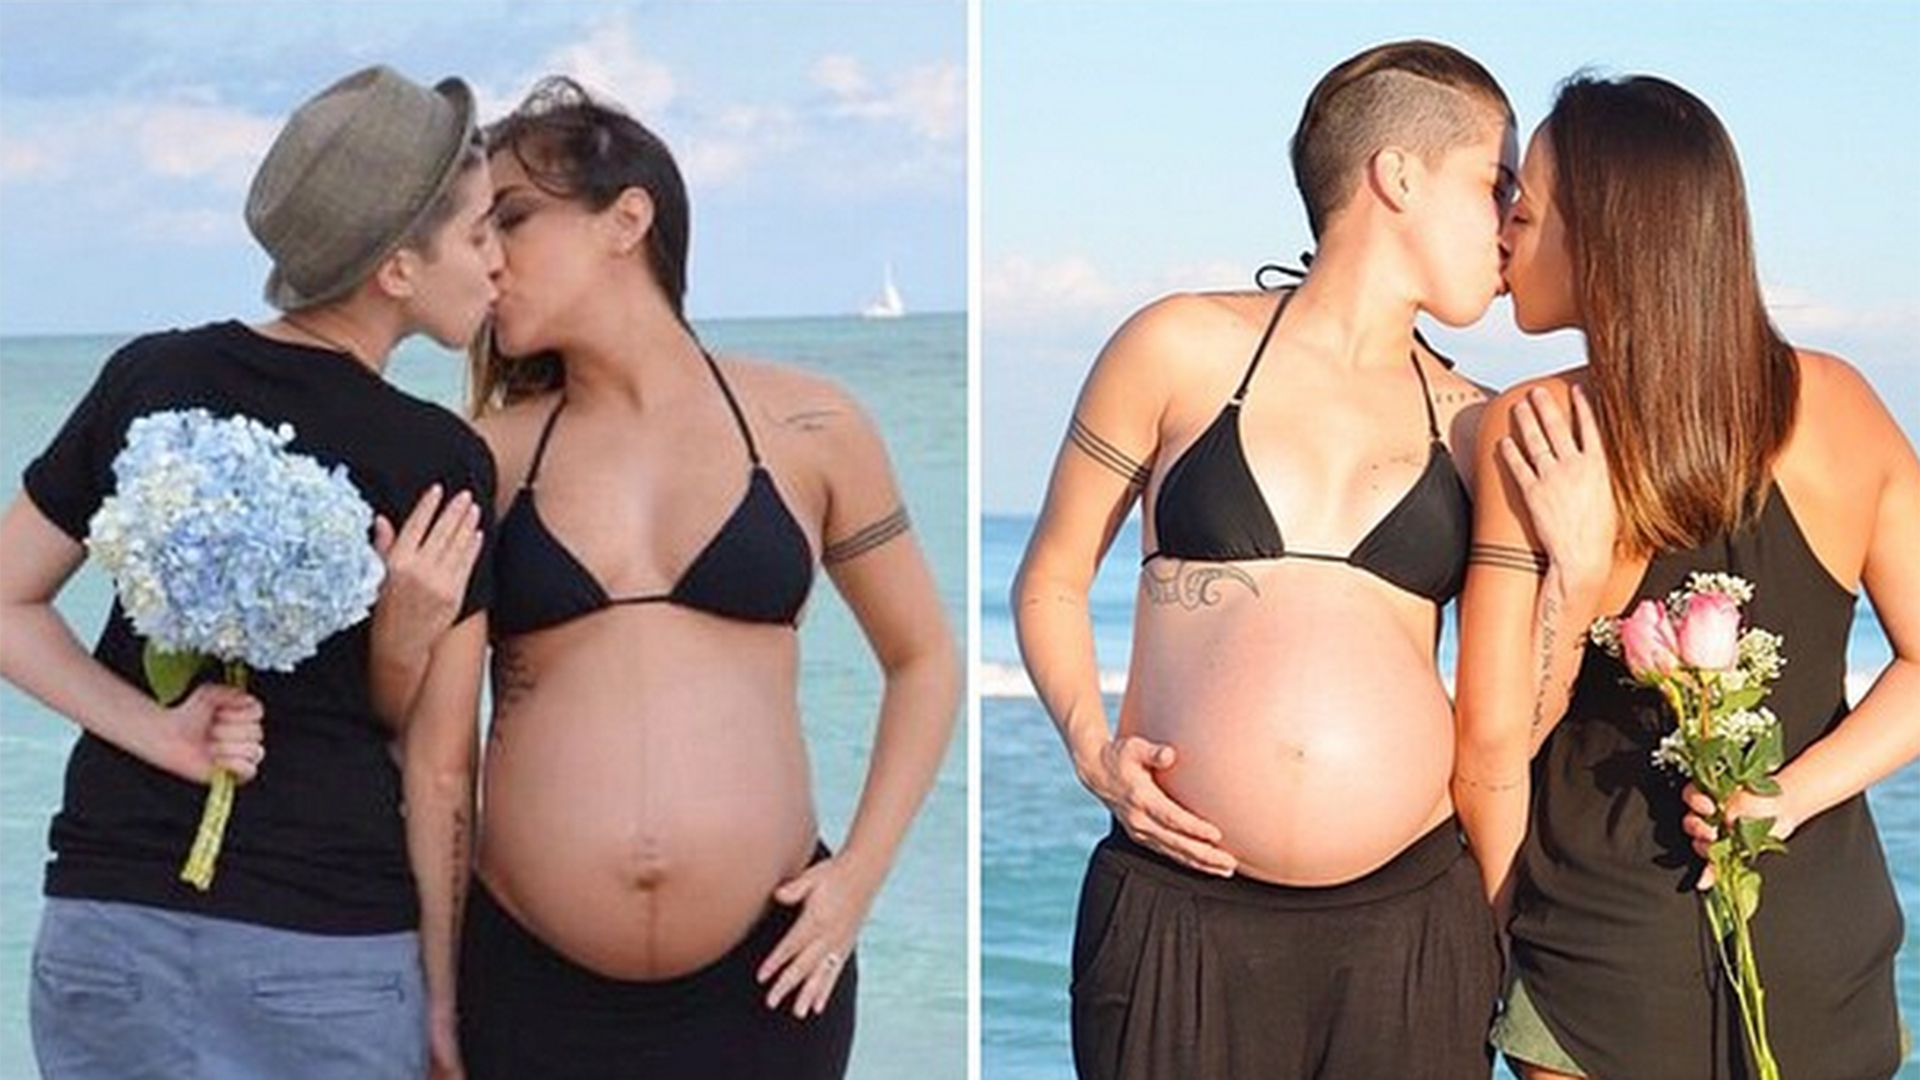 Lesbian couple's side-by-side pregnancy photos go viral ... Hayden Panettiere Rumors